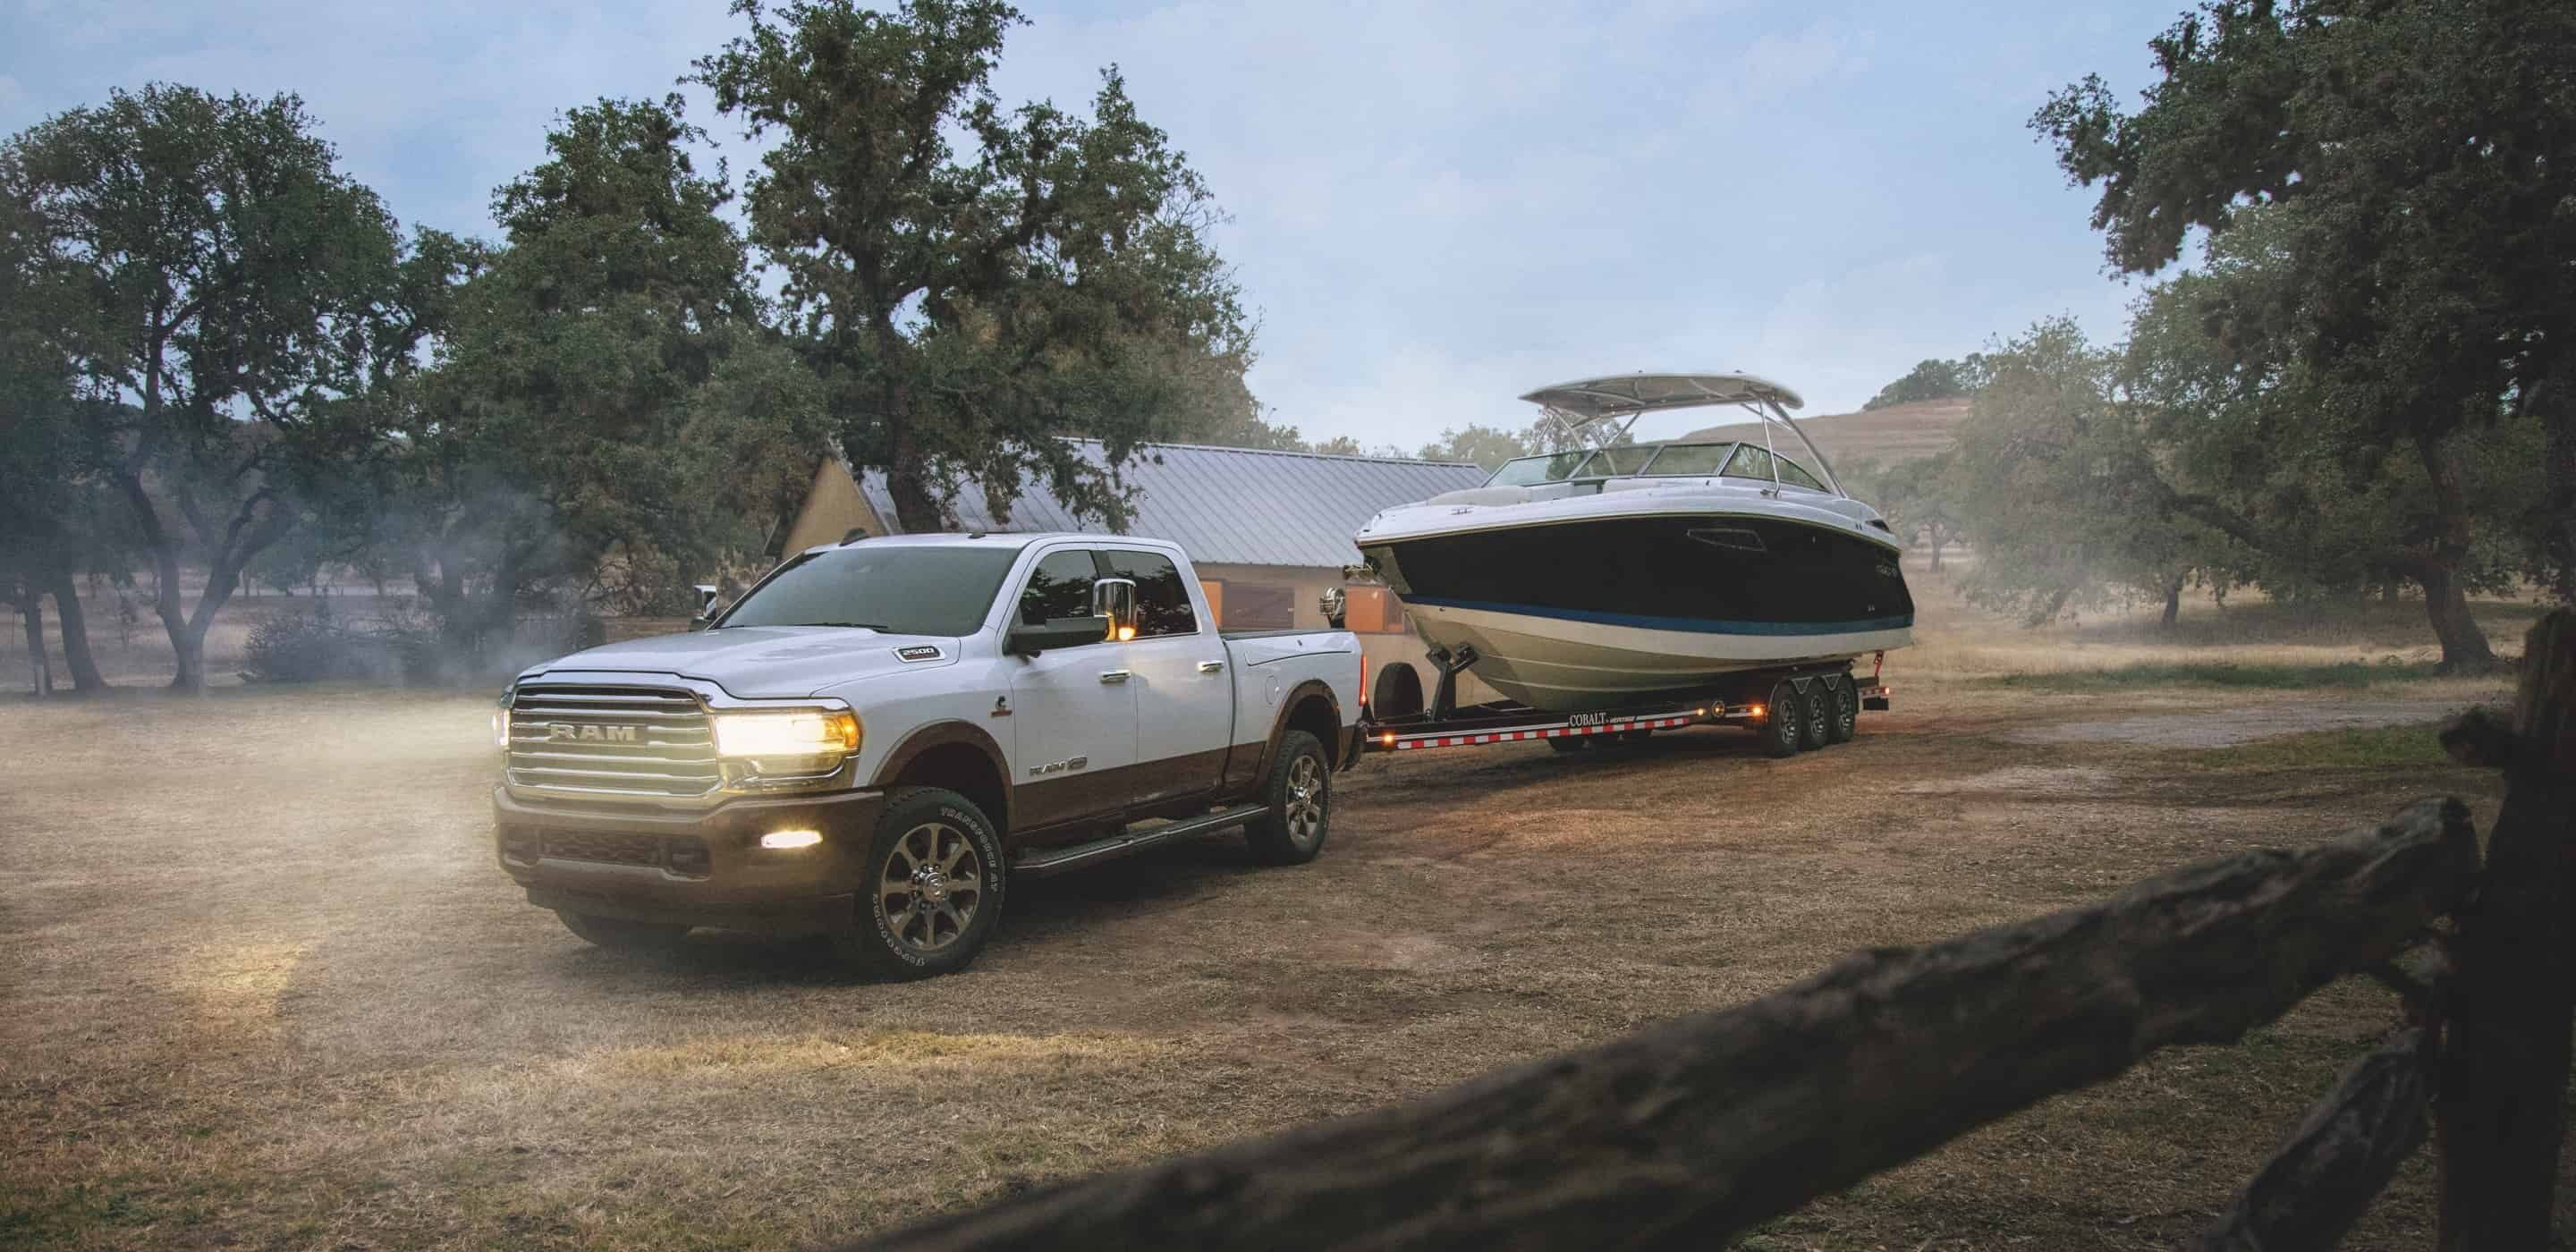 white 2020 ram 2500 towing a boat